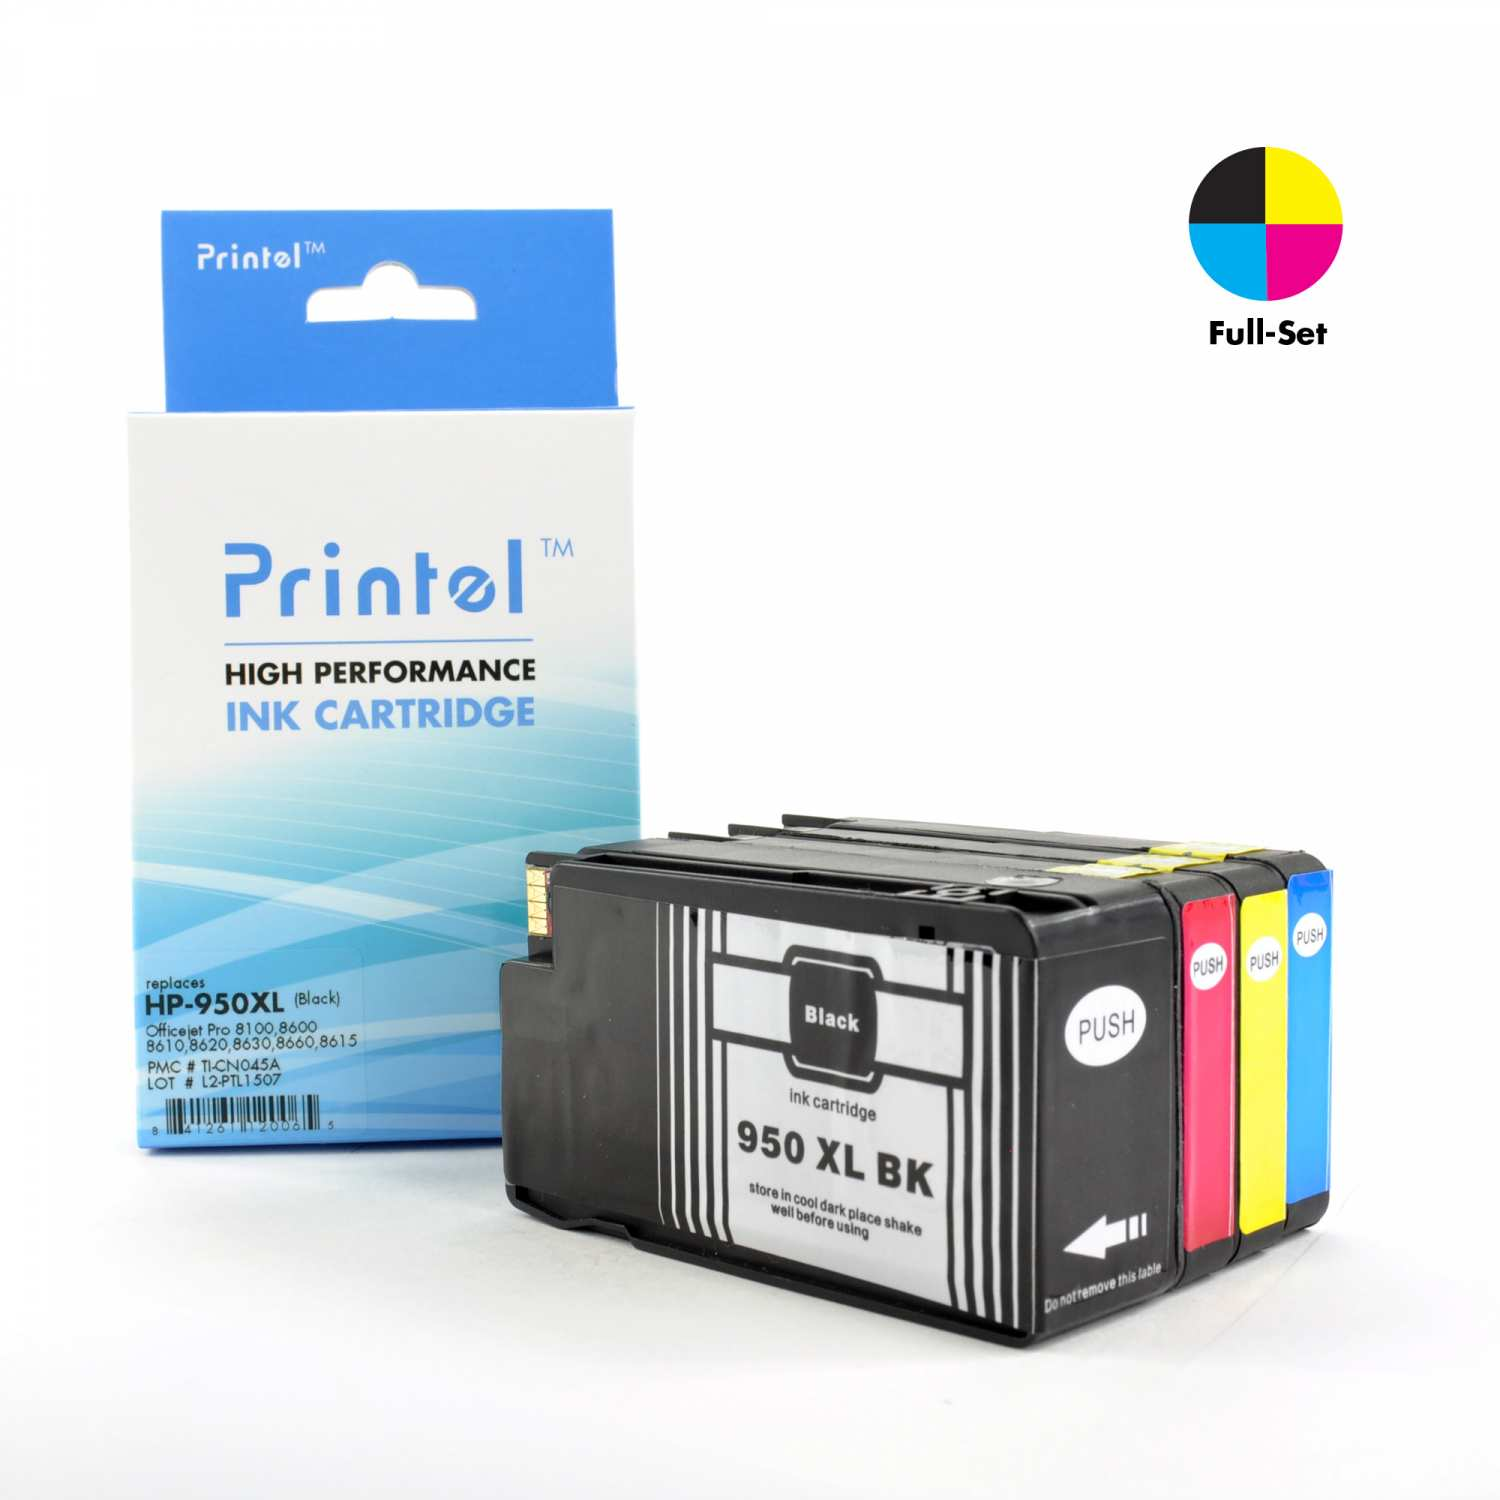 printel brand new replacement ink cartridge for hp 950xl 951xl cn045an cn046an cn047an. Black Bedroom Furniture Sets. Home Design Ideas